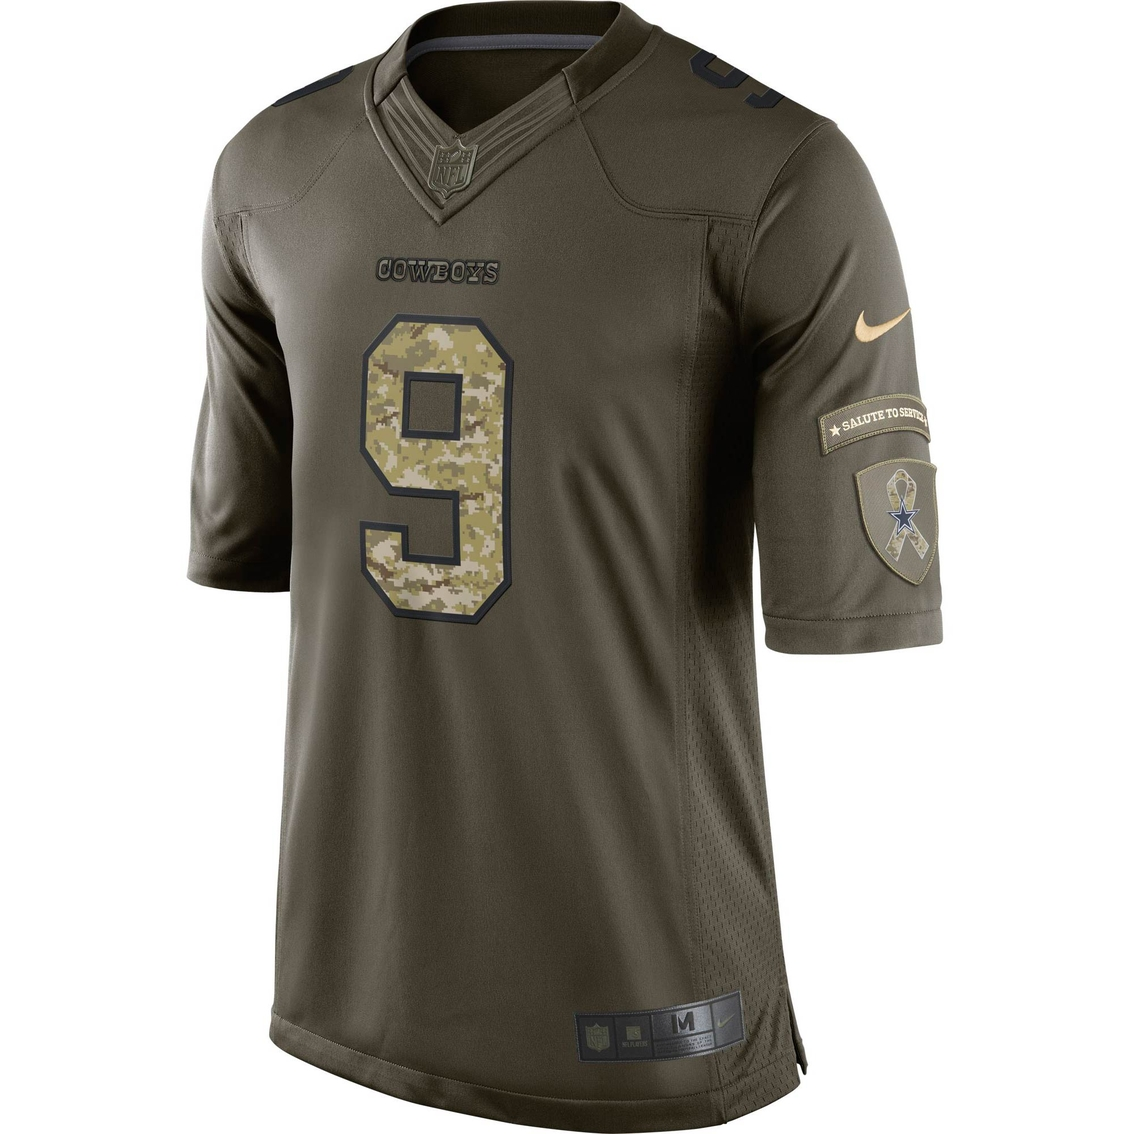 wholesale dealer e06ed a4364 Nike Nfl Dallas Cowboys Salute To Service Romo Jersey ...